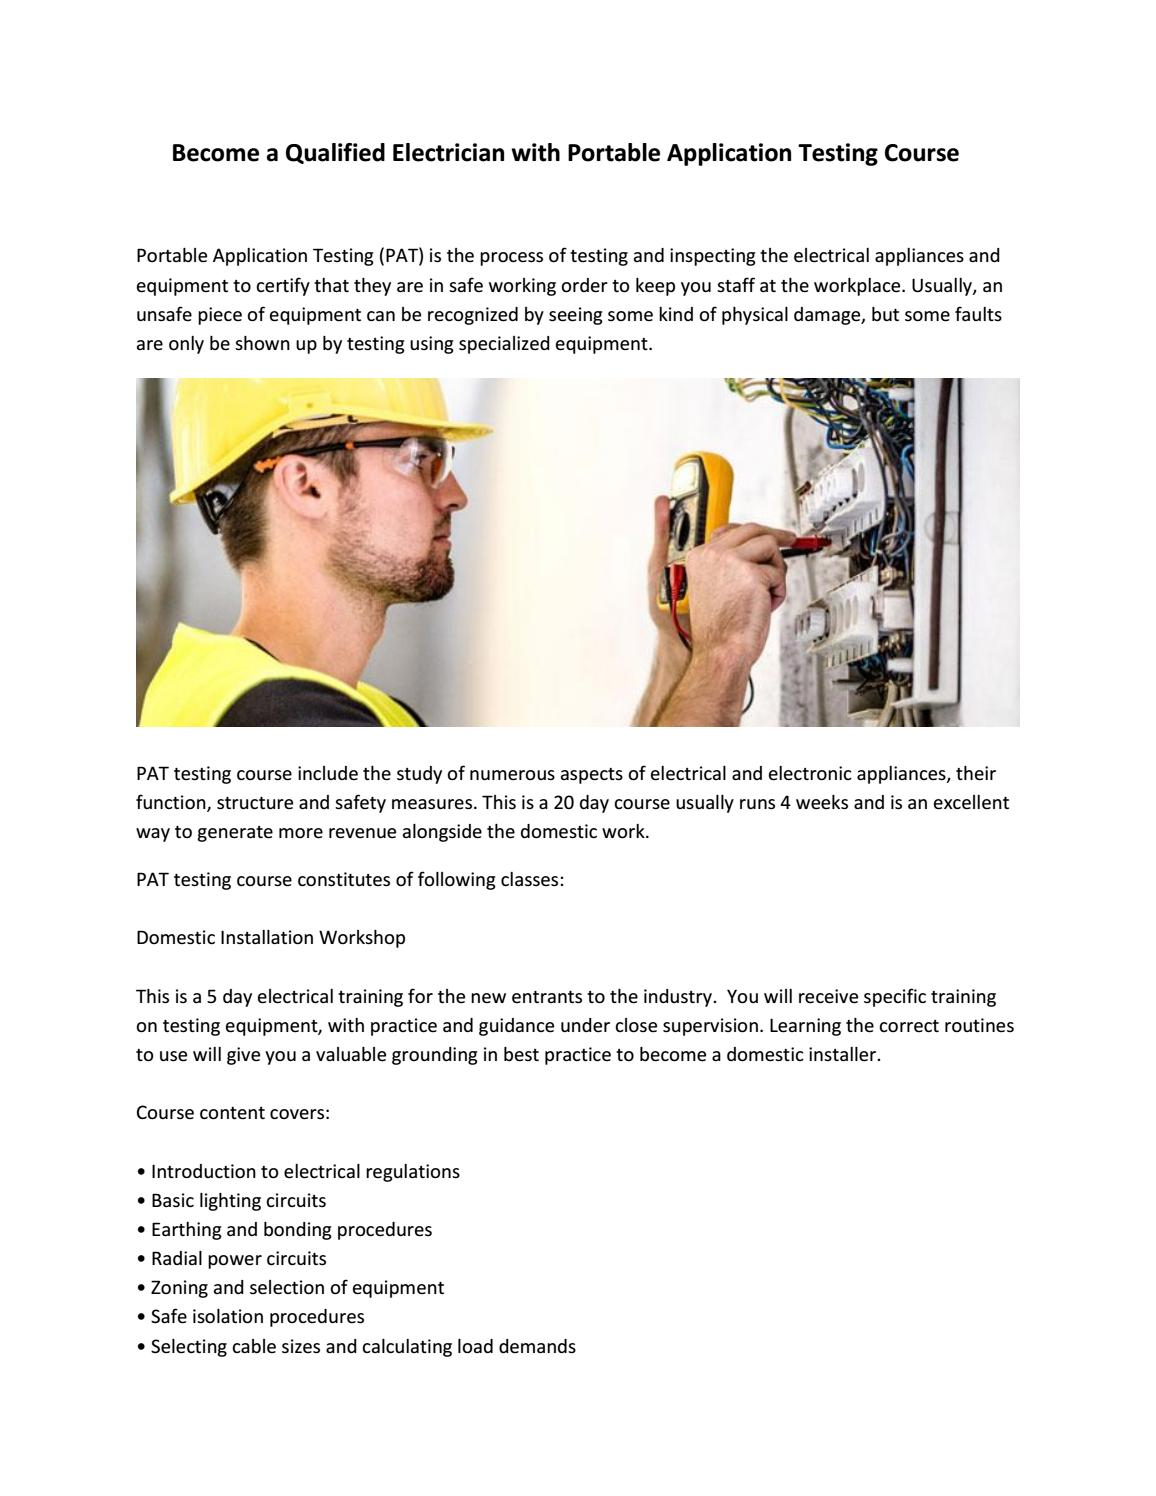 Become A Qualified Electrician With Portable Application Testing You Should Understand Why Electrical Appliances Are Earthed Course By Electricians Success Academy Issuu